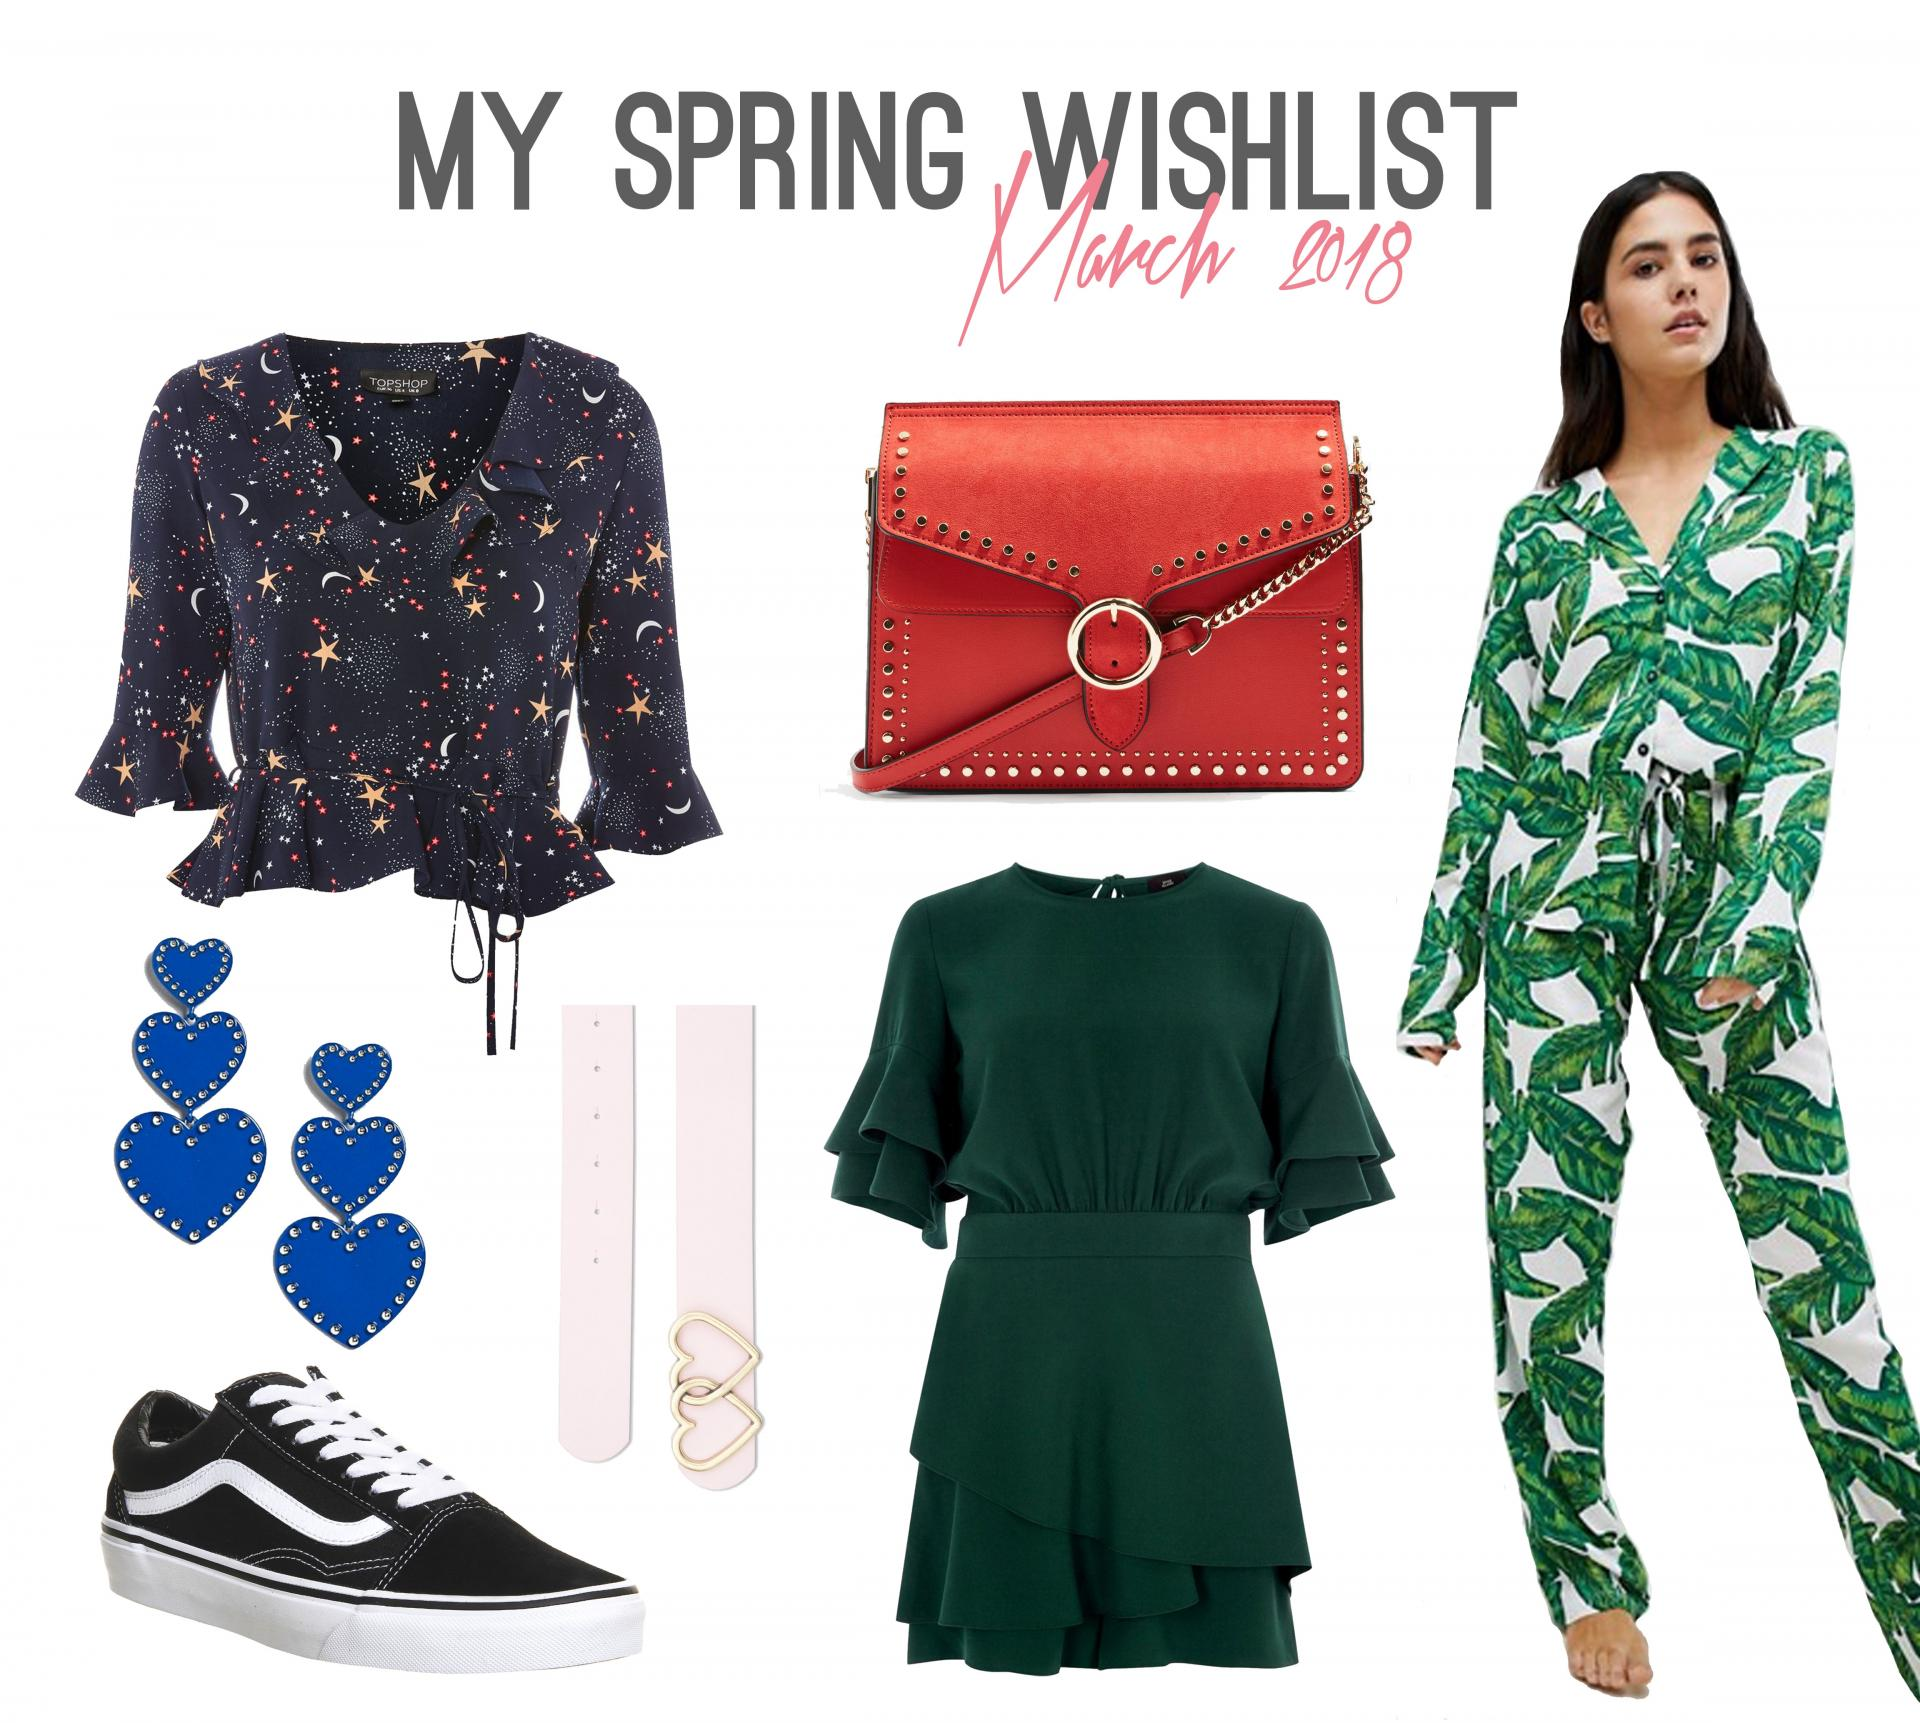 My Spring Fashion Wishlist - Rachel Nicole UK Blogger